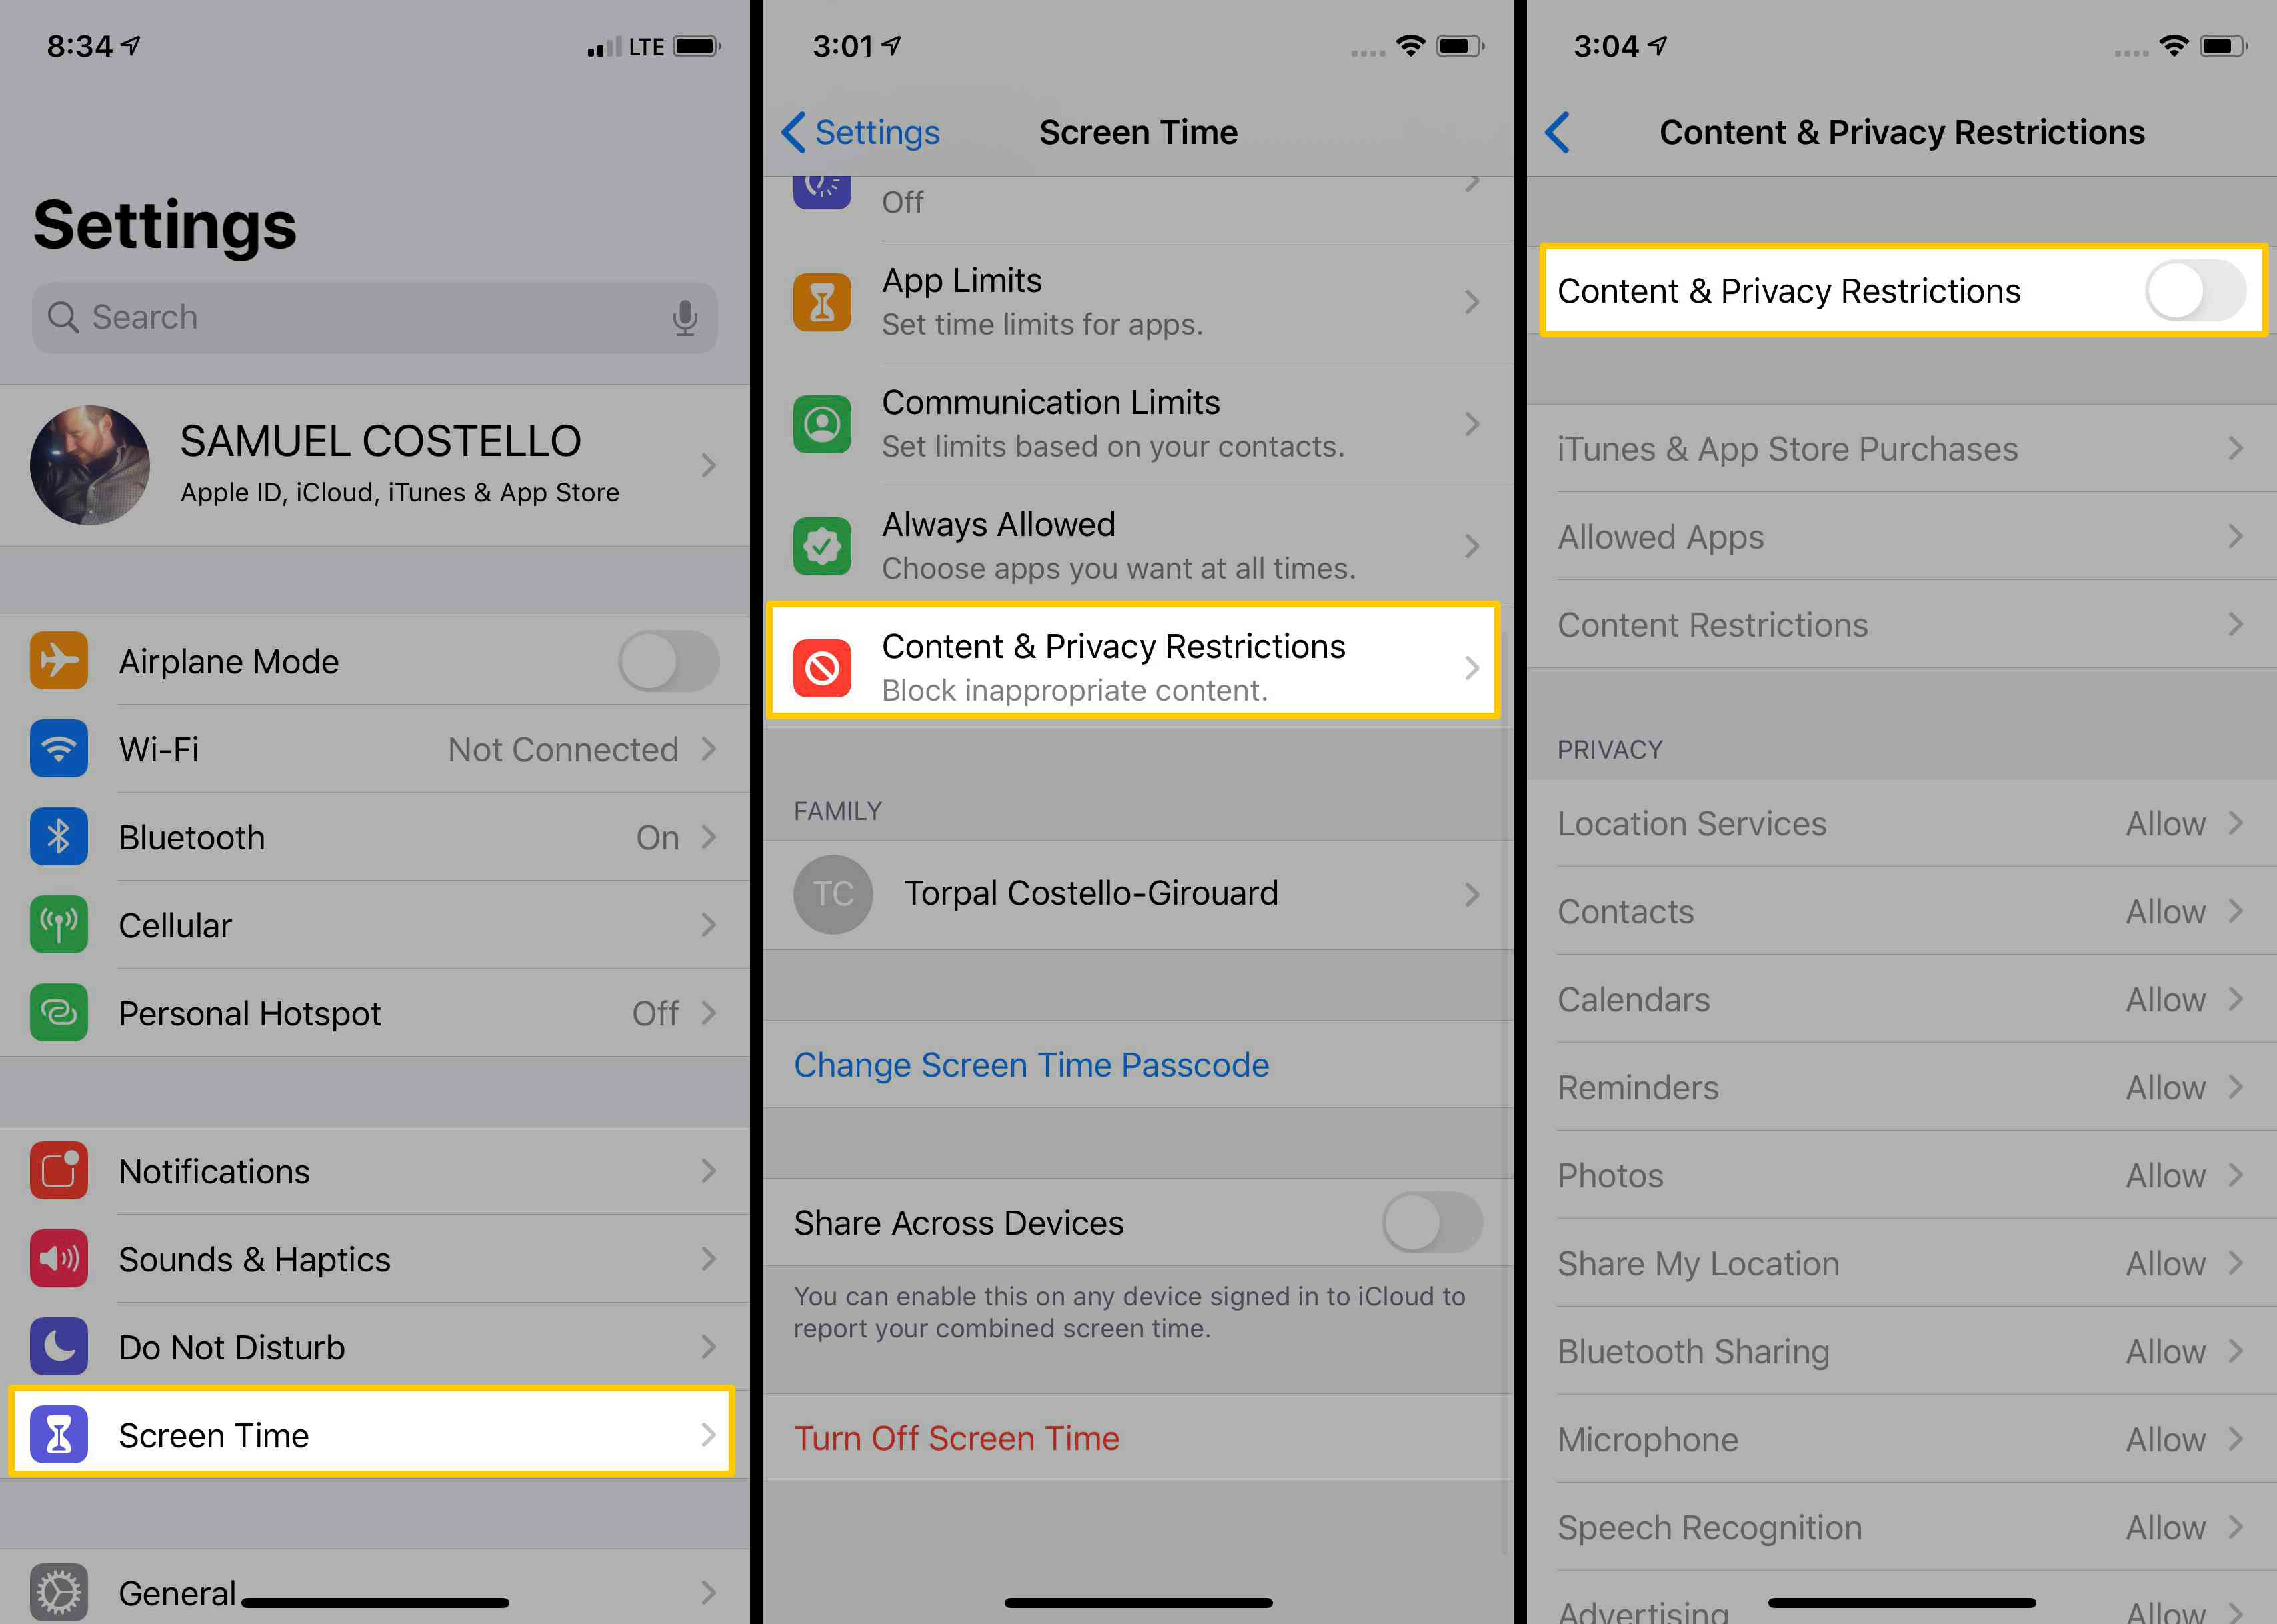 Screenshots showing how to toggle On Content & Privacy Restrictions on iOS.